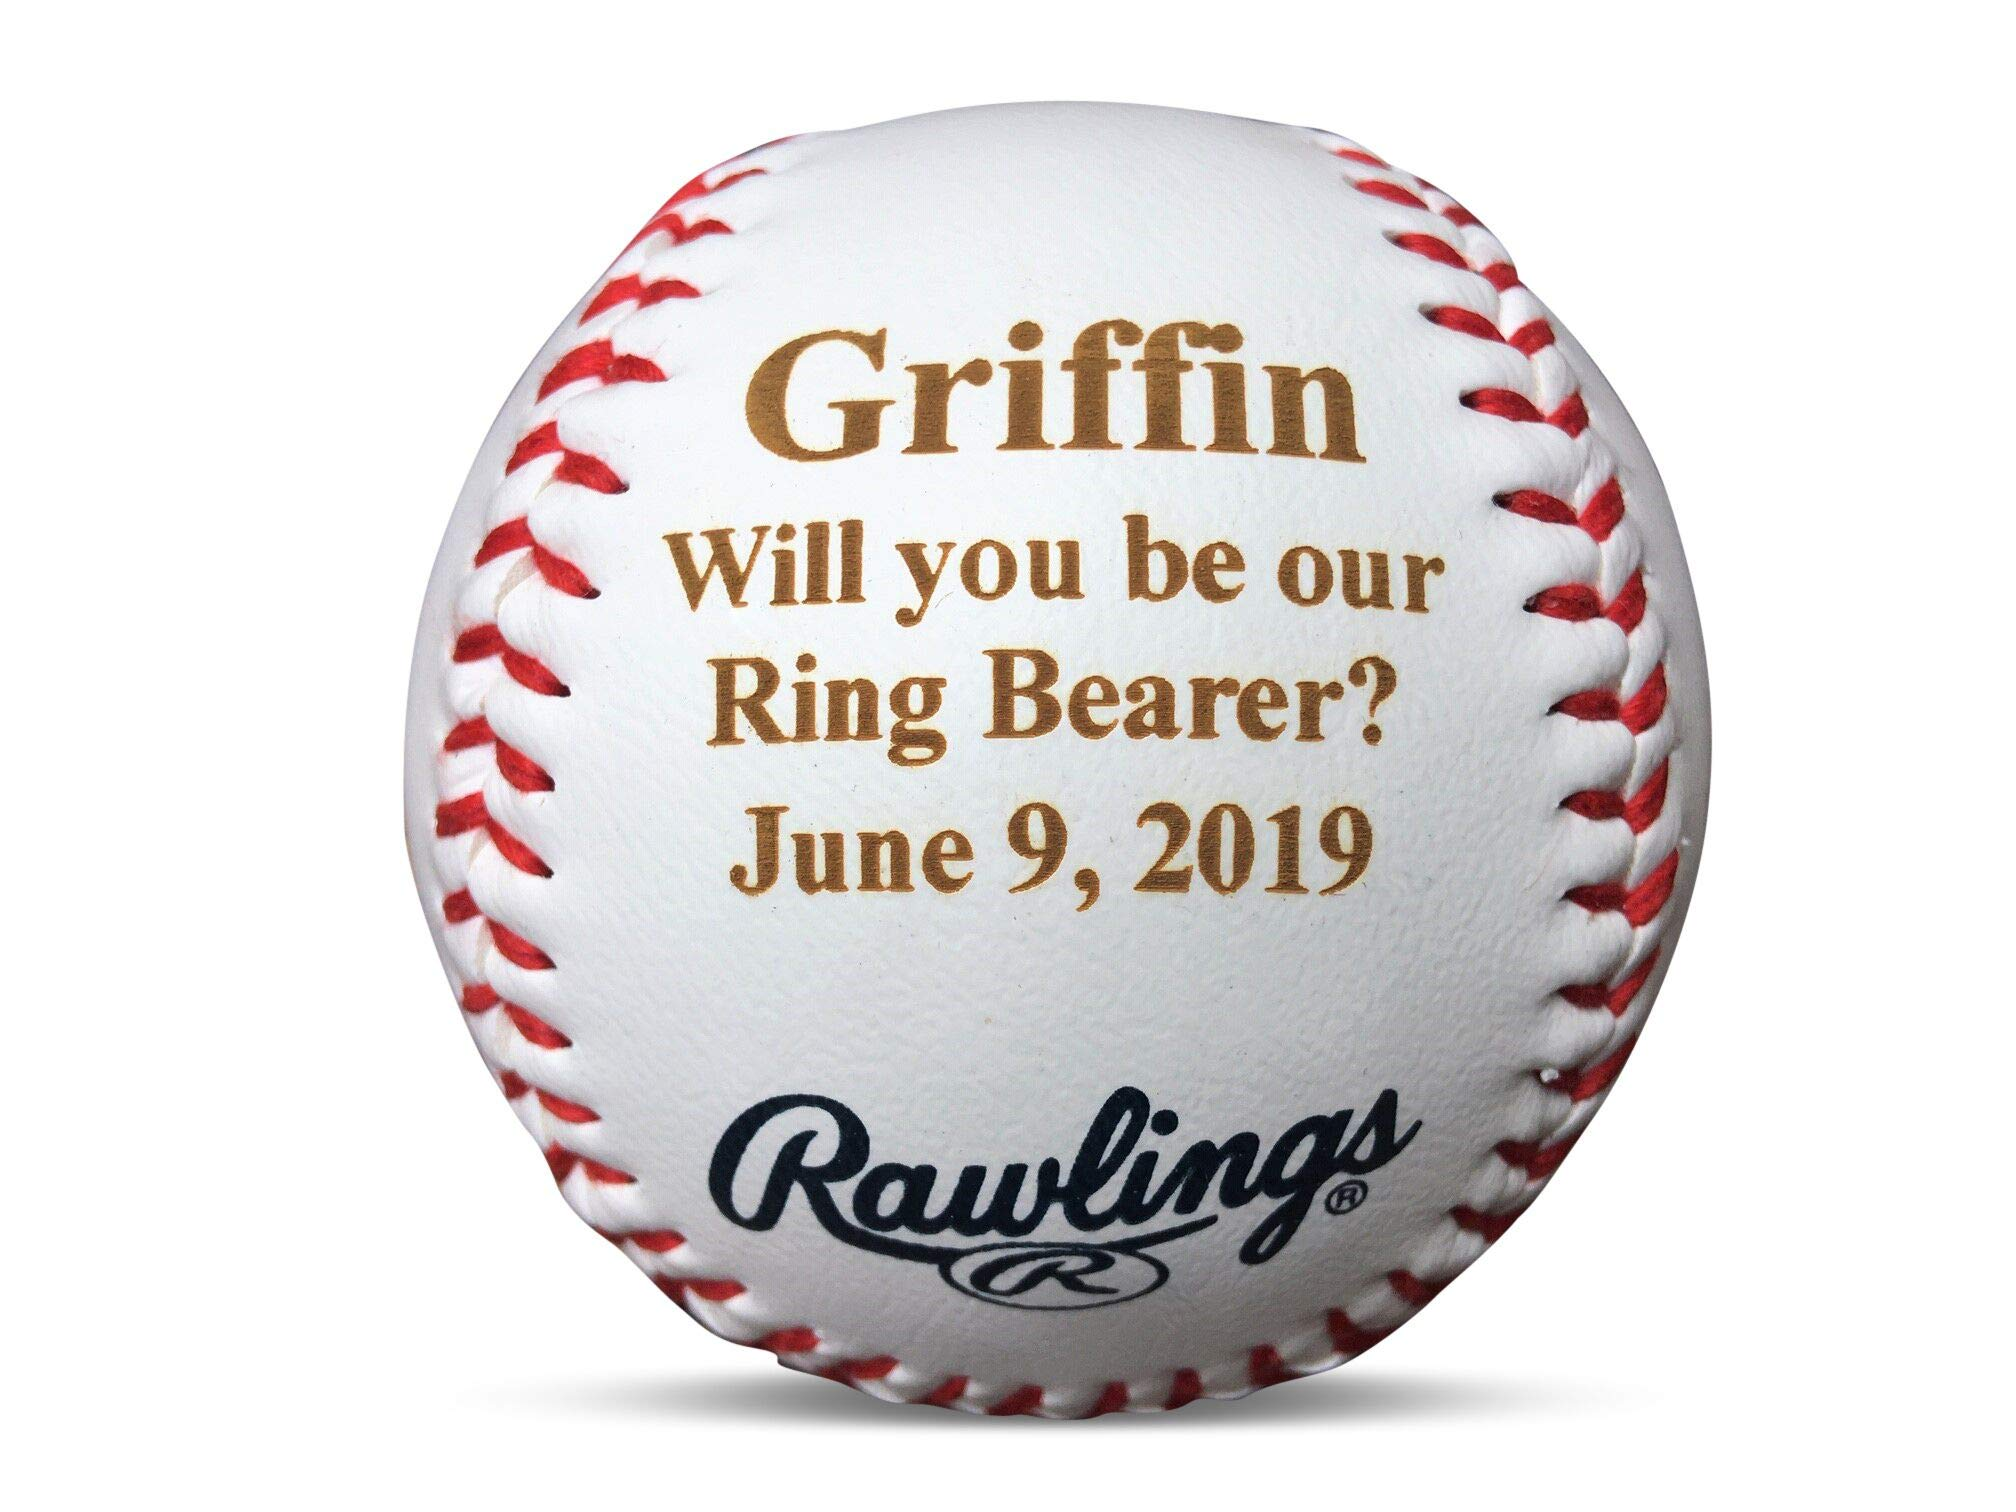 Personalized Ring Bearer Invitation Gift Baseball, Will You Be Our Ring Bearer Proposal Wedding Keepsake, Ring Security, Custom Engraved Baseball by Rincon Arts Engraving